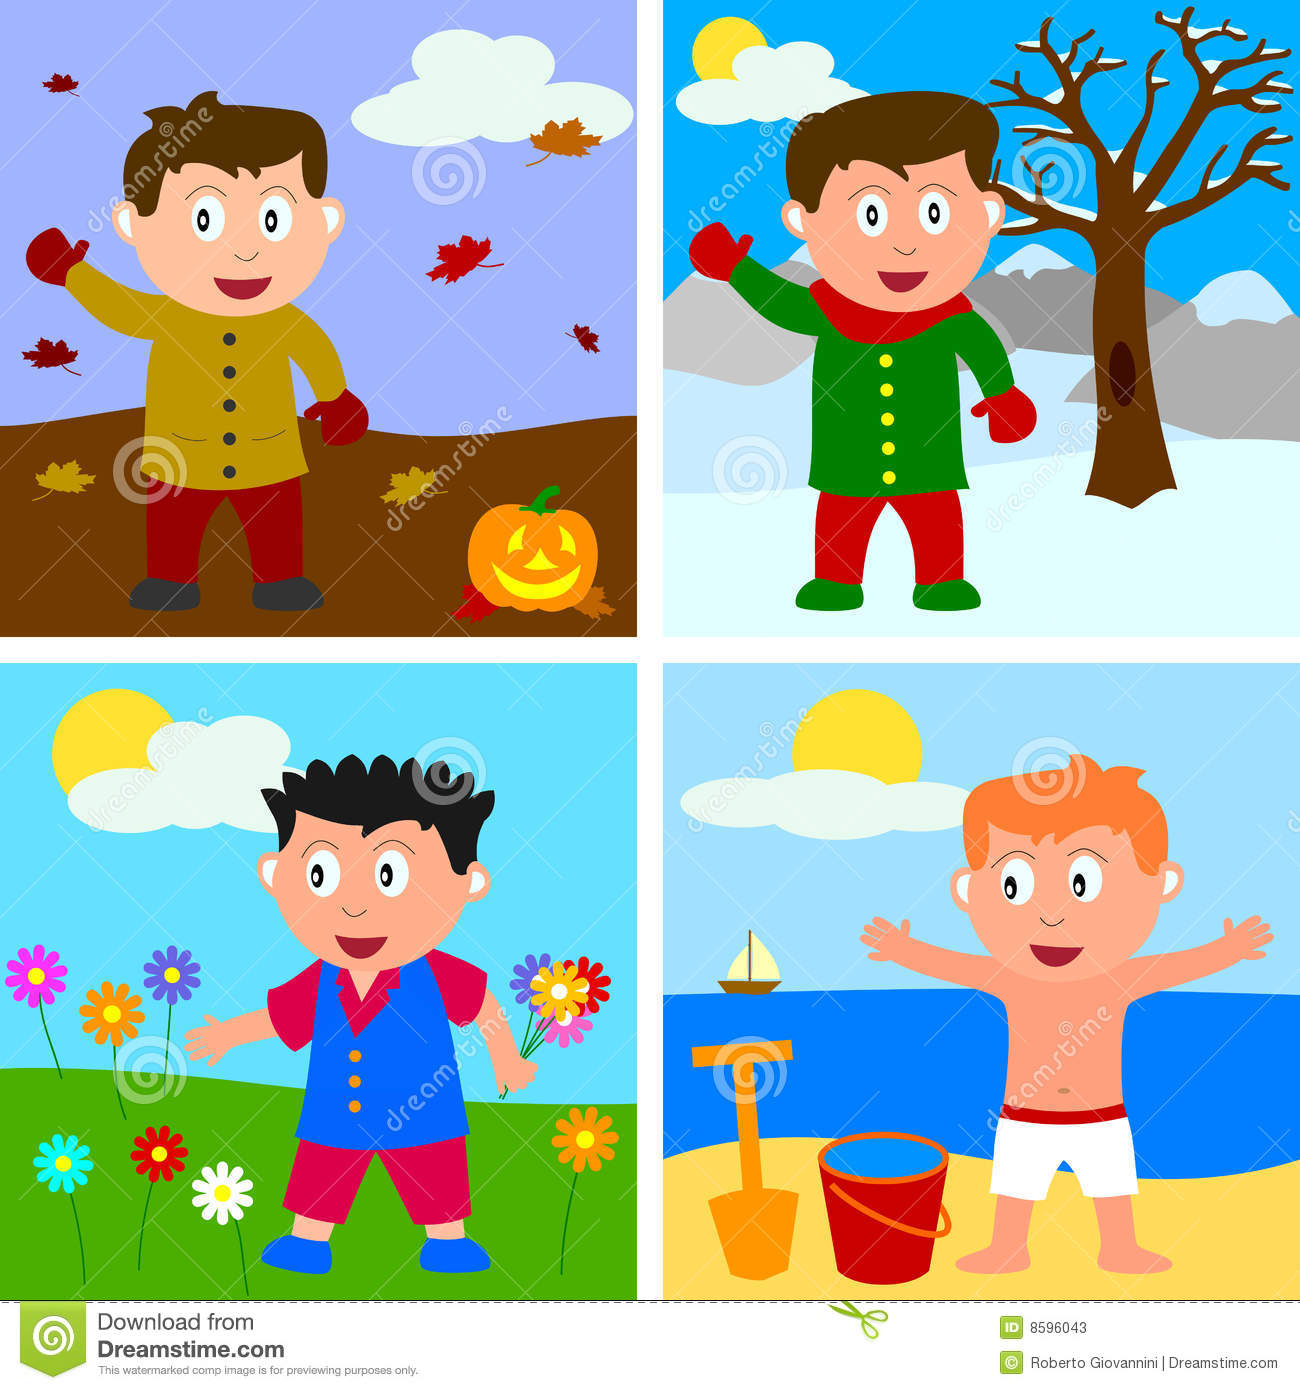 Clip Art Seasons Clipart all seasons clipart kid four boys in autumn winter spring and summer eps file